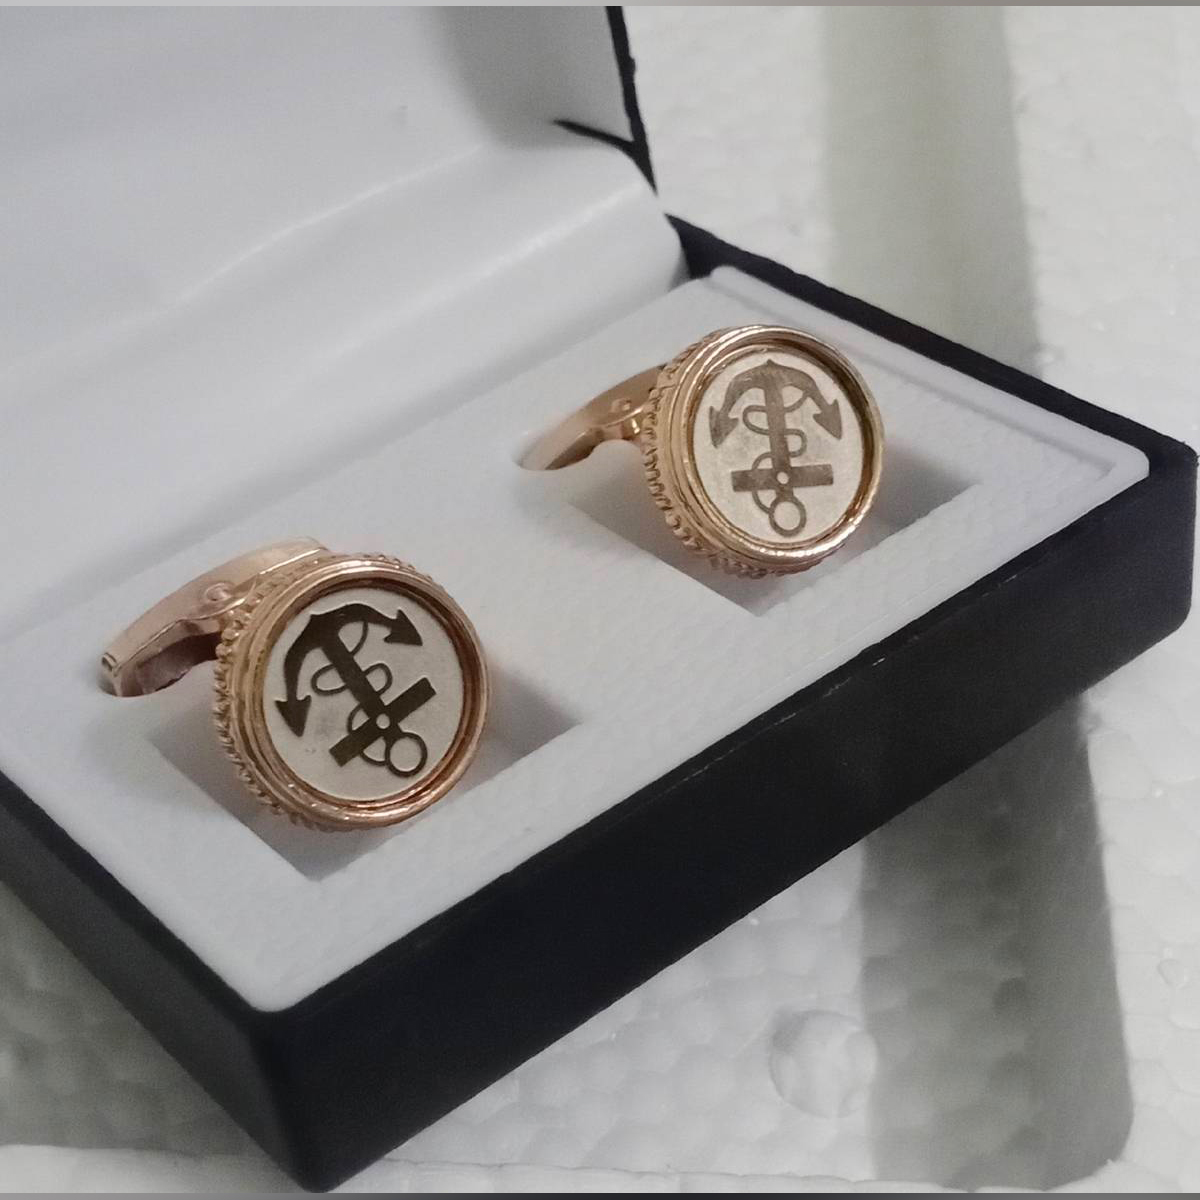 French Shirt Fashion Cufflinks for Men's .Cuff links stud High Quality 2019 New Arrival